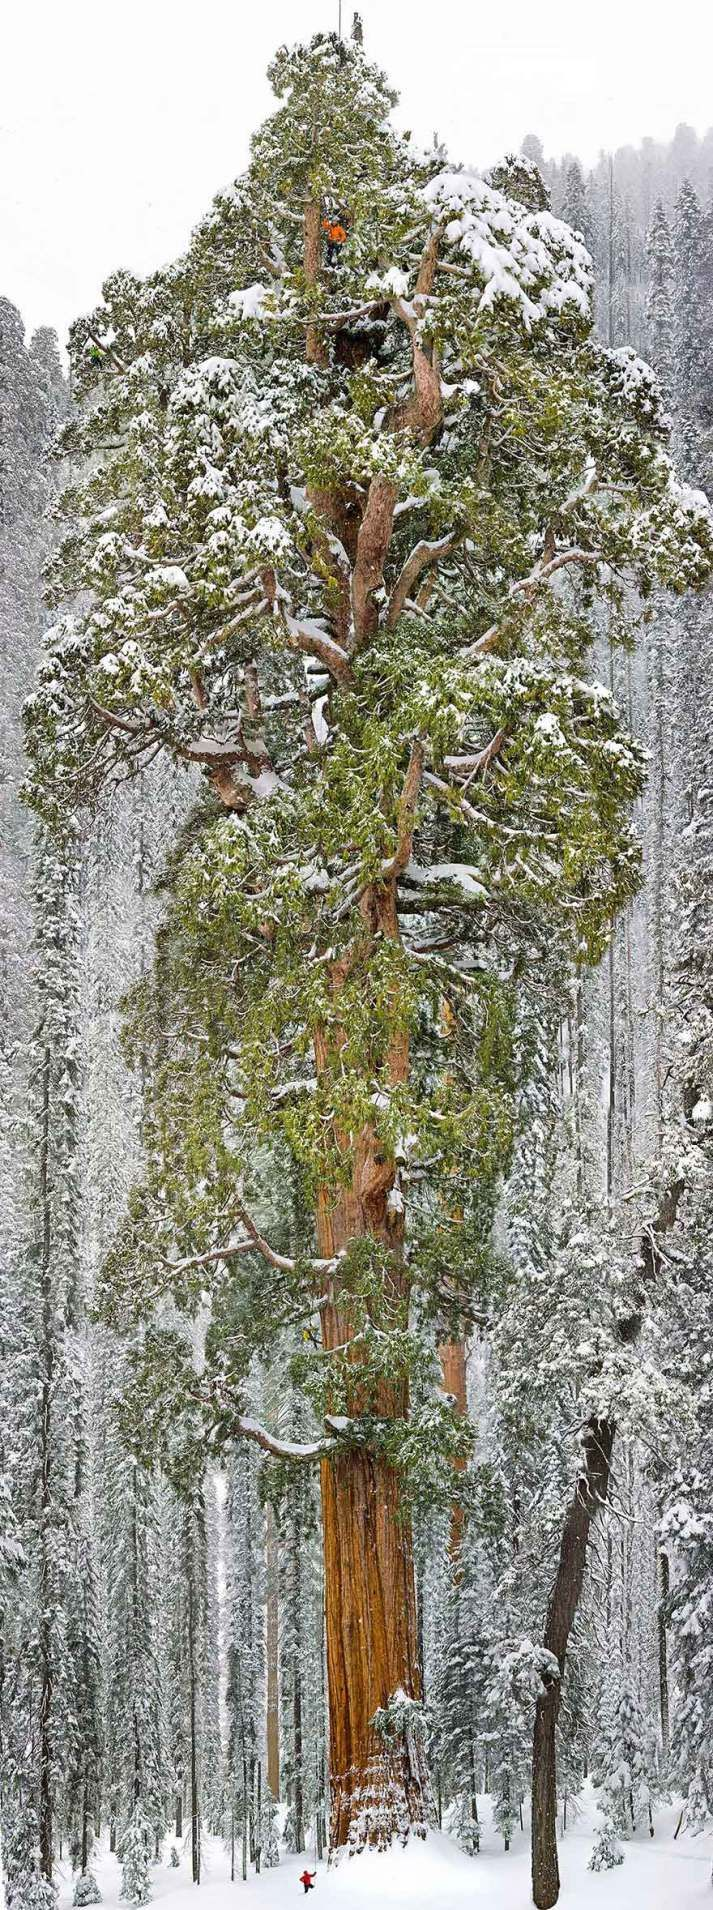 The Giant, Sequoia National Park, California - US National Parks